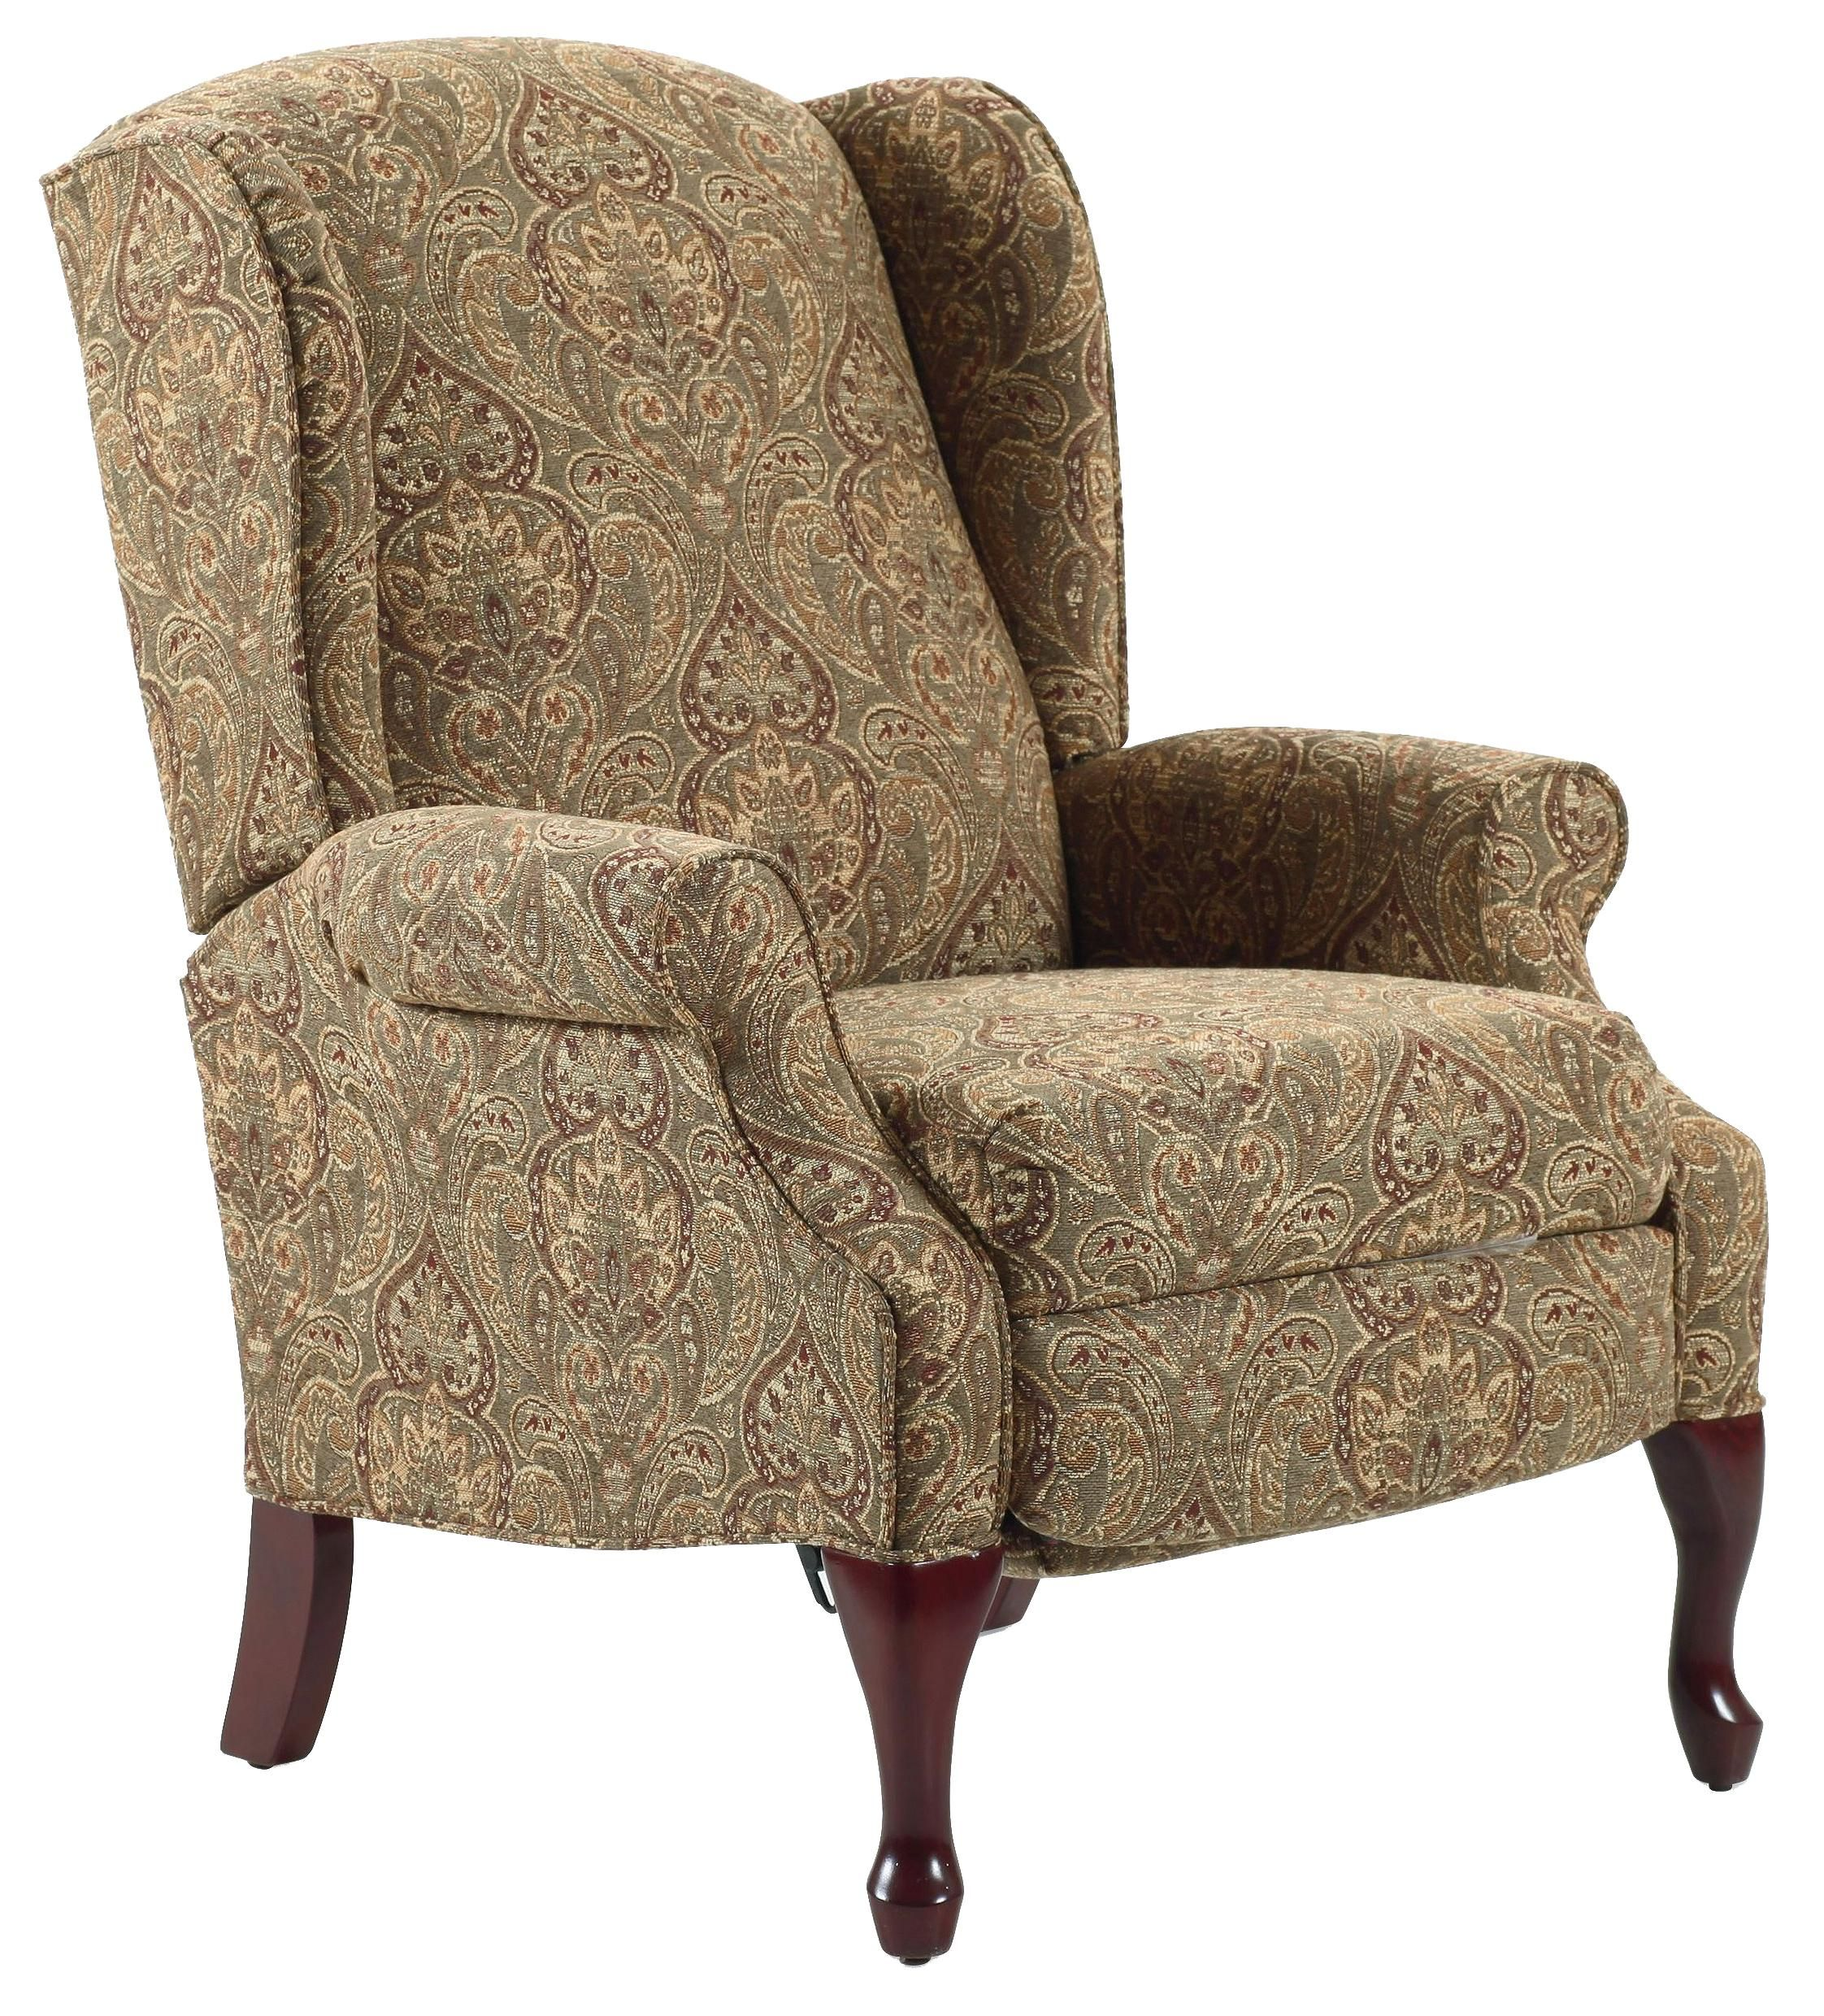 Recliners Hampton Traditional High Leg Recliner In Wing Chair Style By Lane Riverview Galleries Furniture Nc